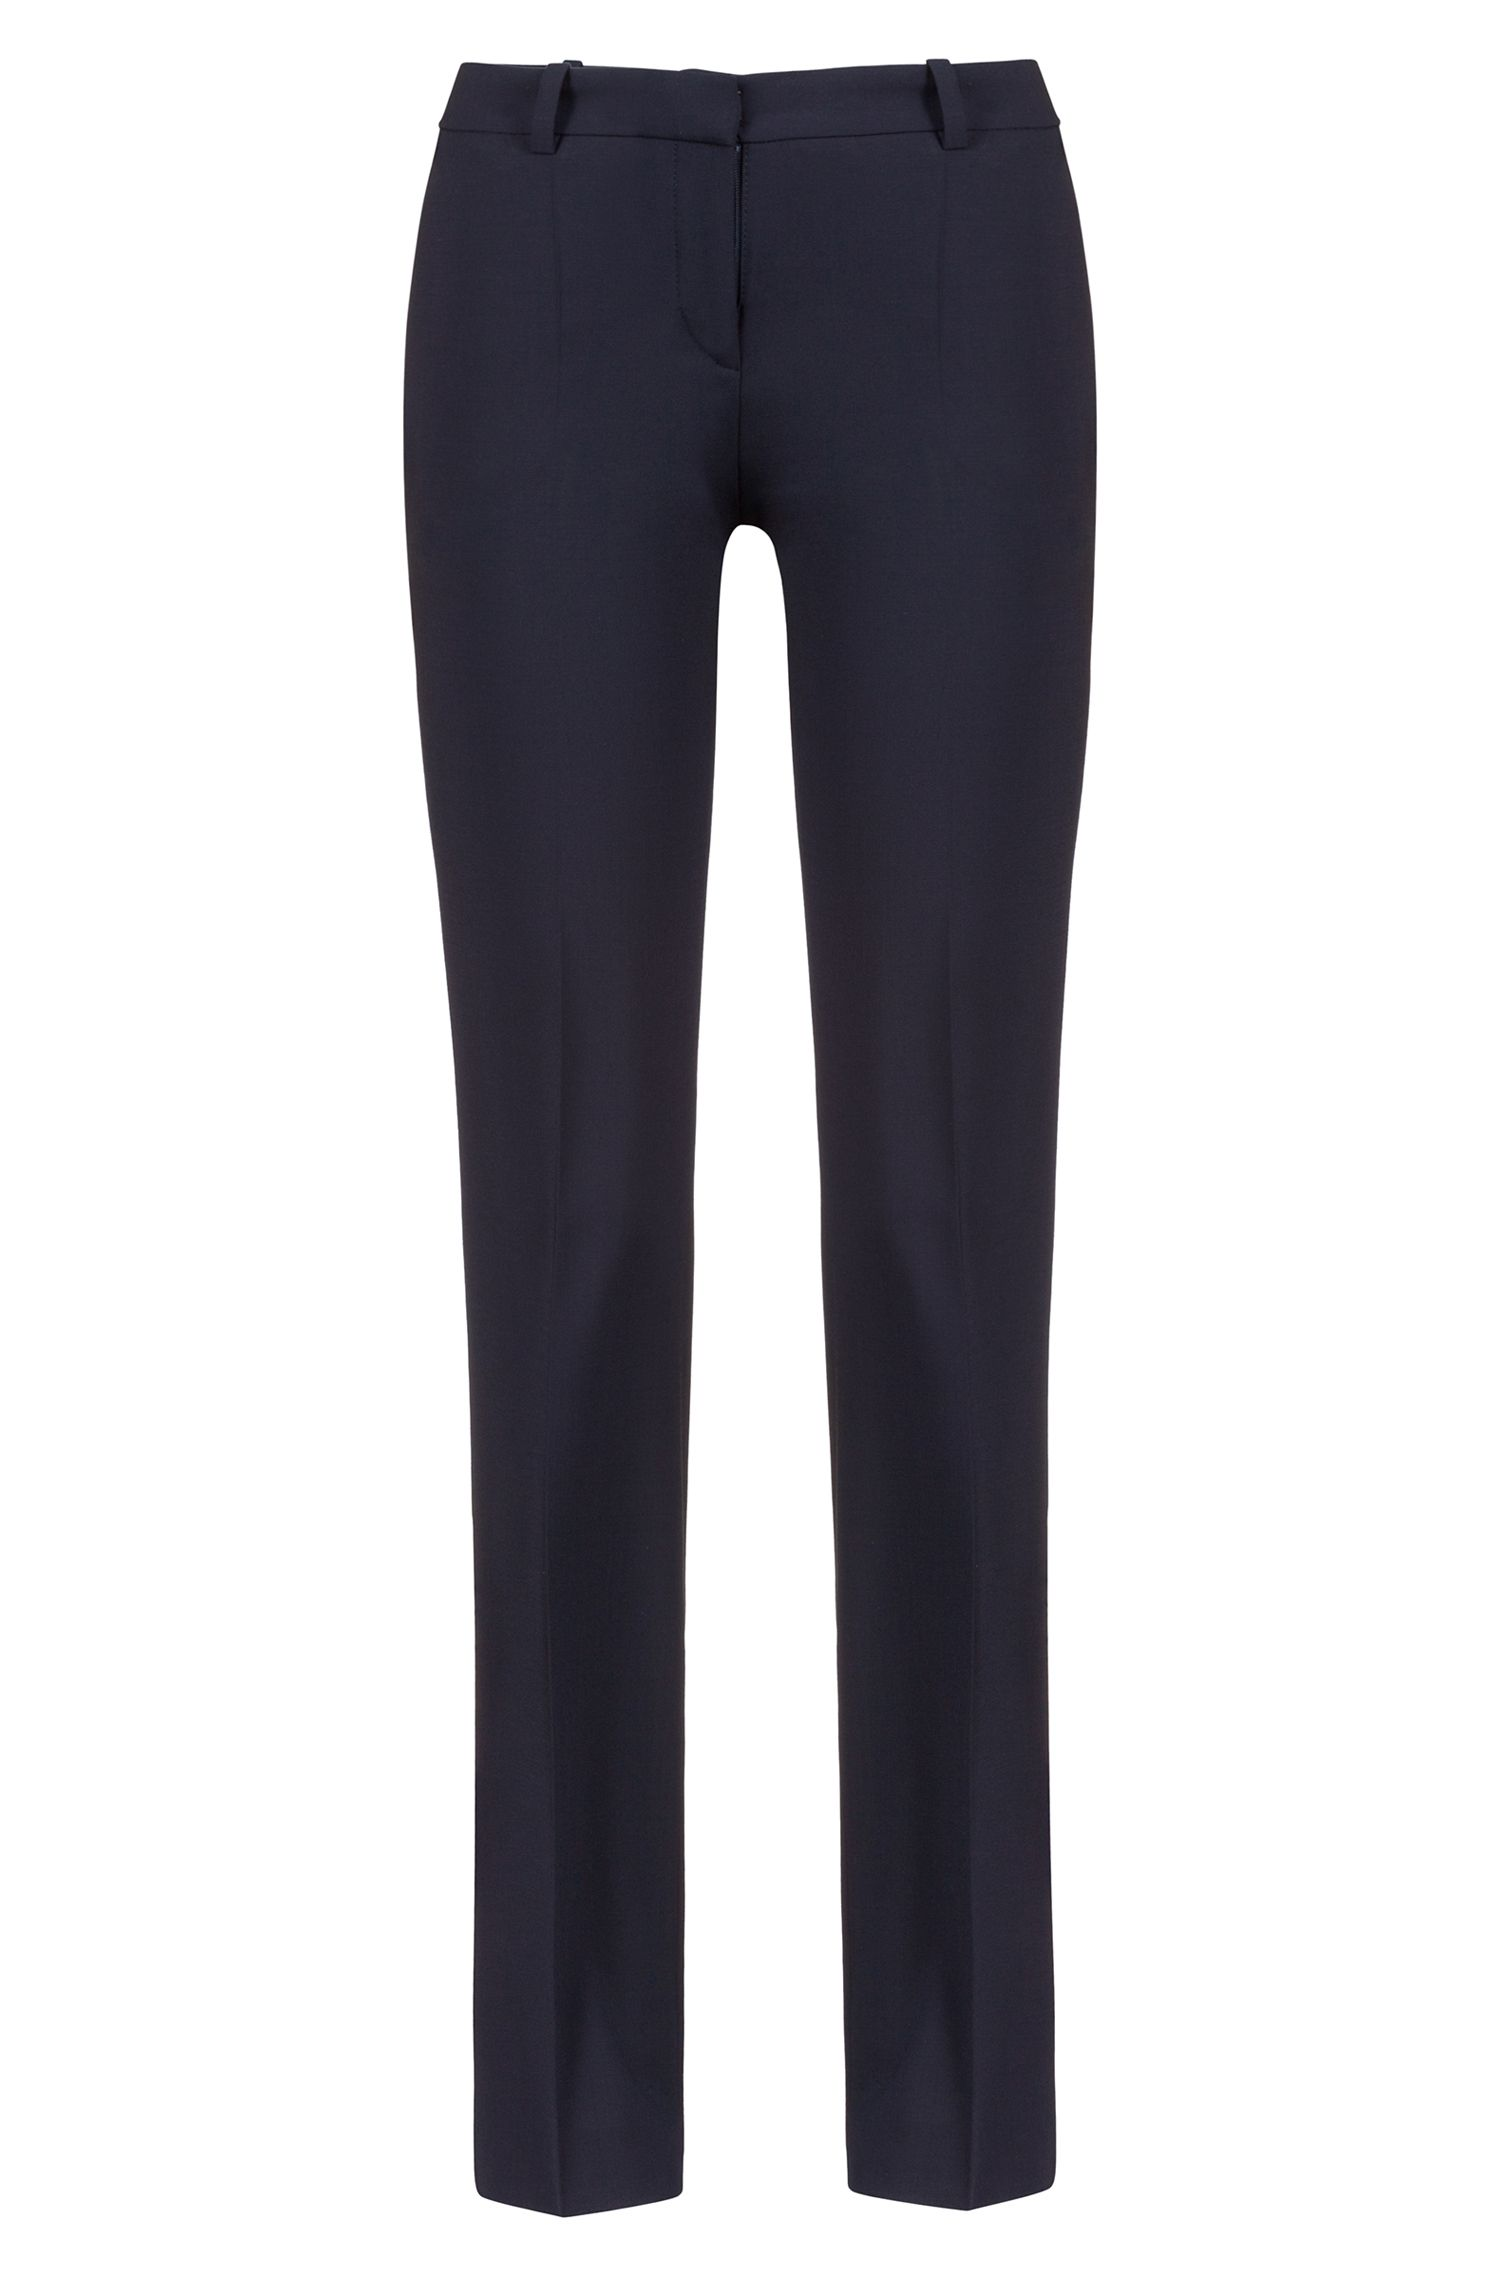 Pantalon HUGO Femme Regular Fit habillé, en laine vierge stretch